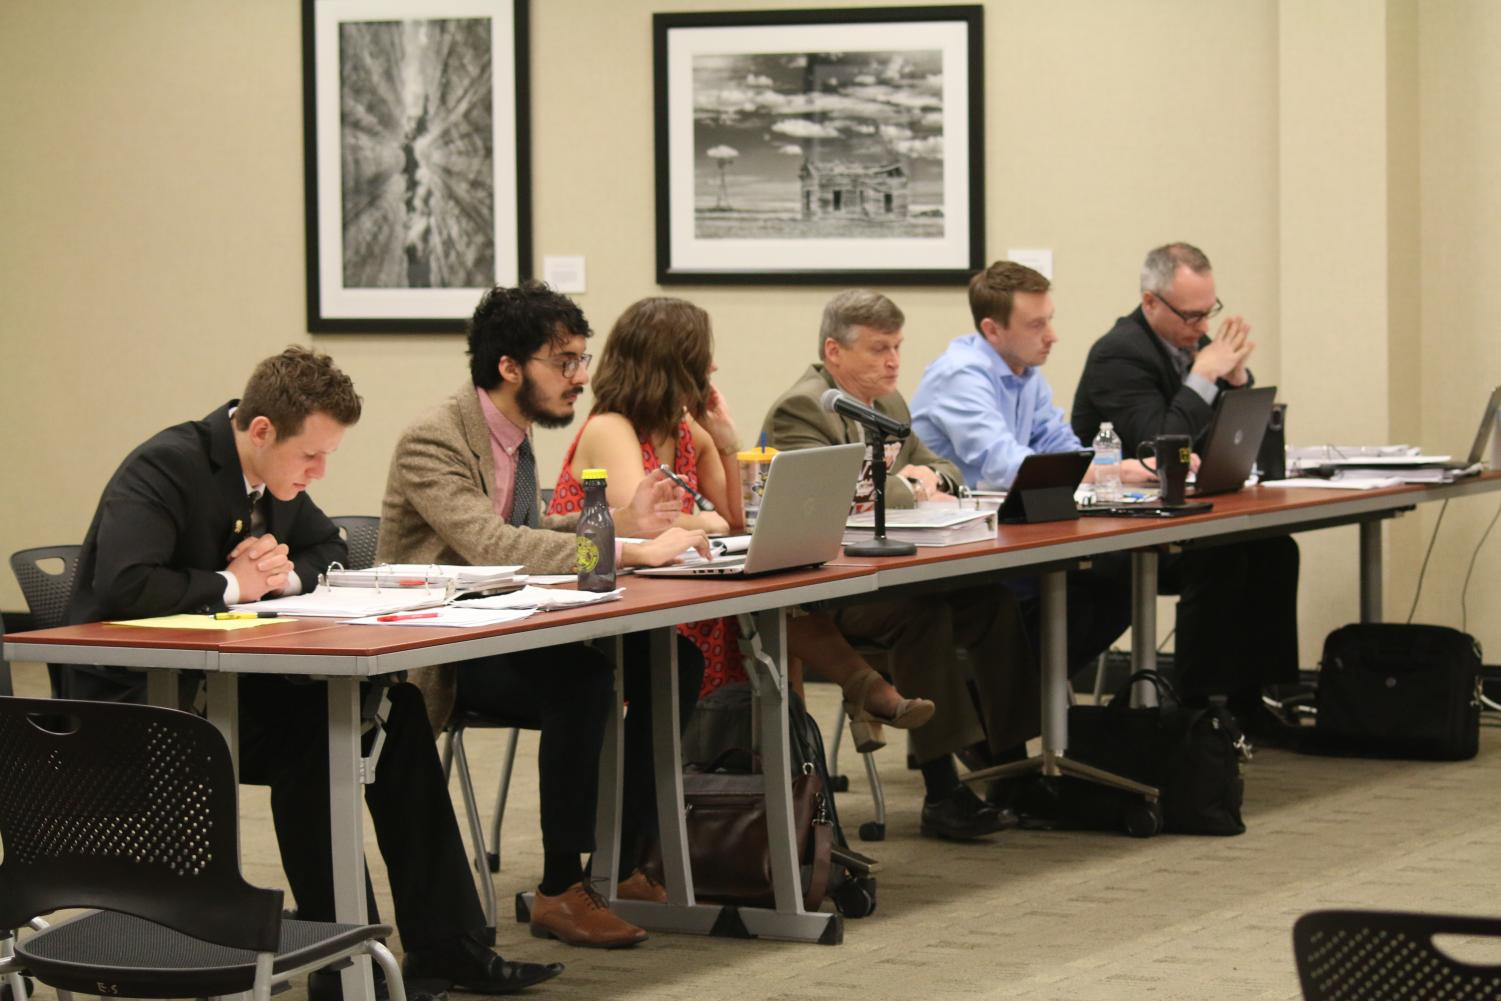 The Student Fee Committee deliberates student fee allocations. The committee voted to cut The Sunflower's funding by a third.